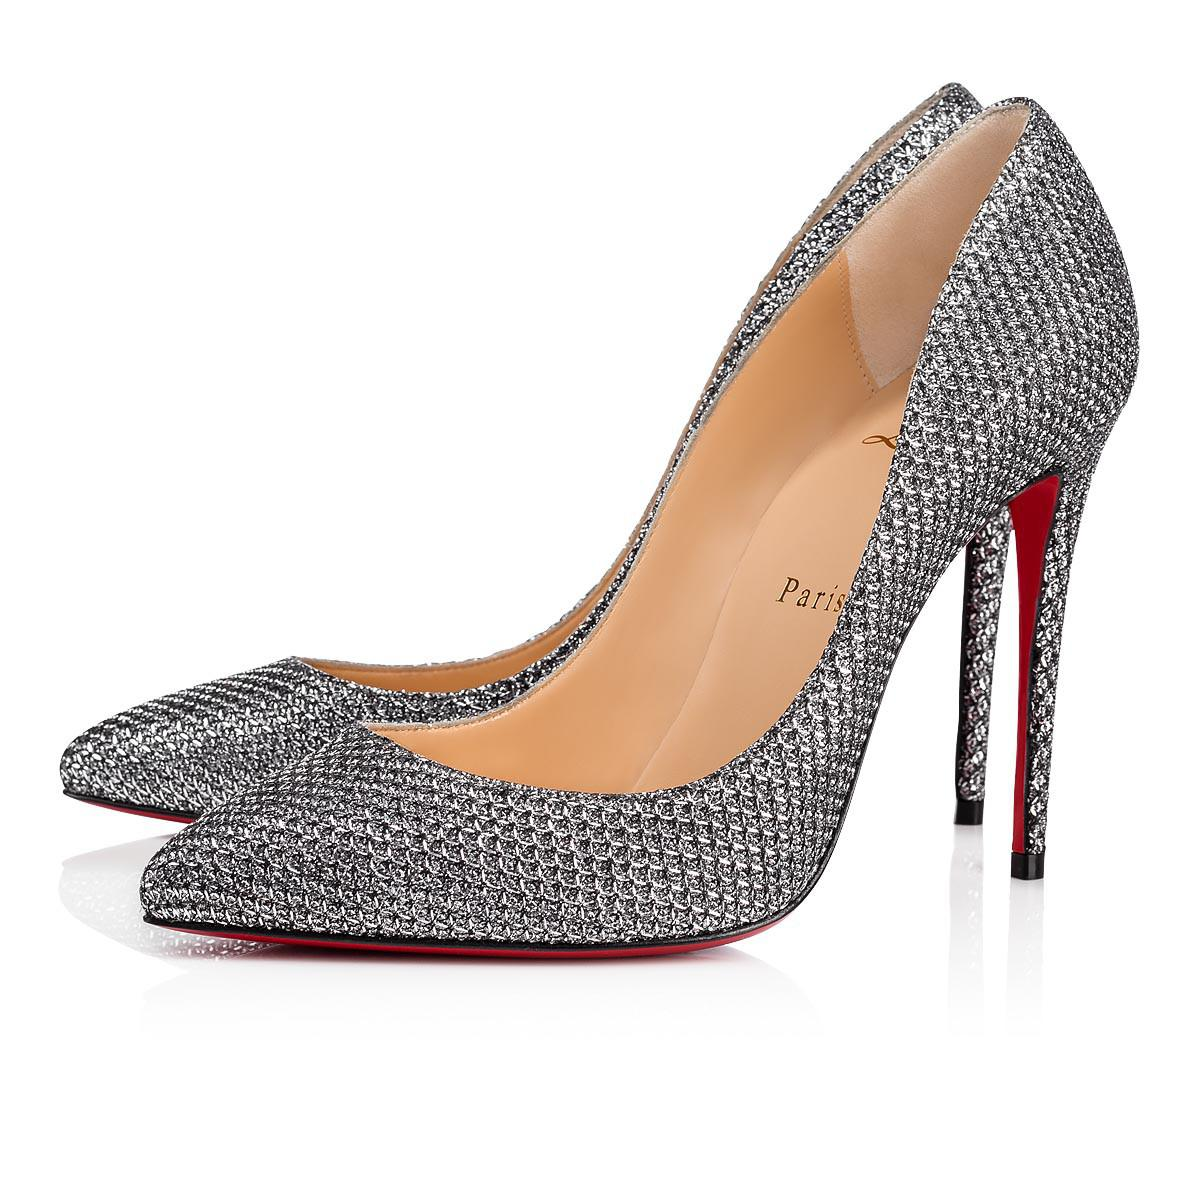 46c2af0fde8 Christian Louboutin Pigalle Follies Glitter Diams 100 Antic Silver ...